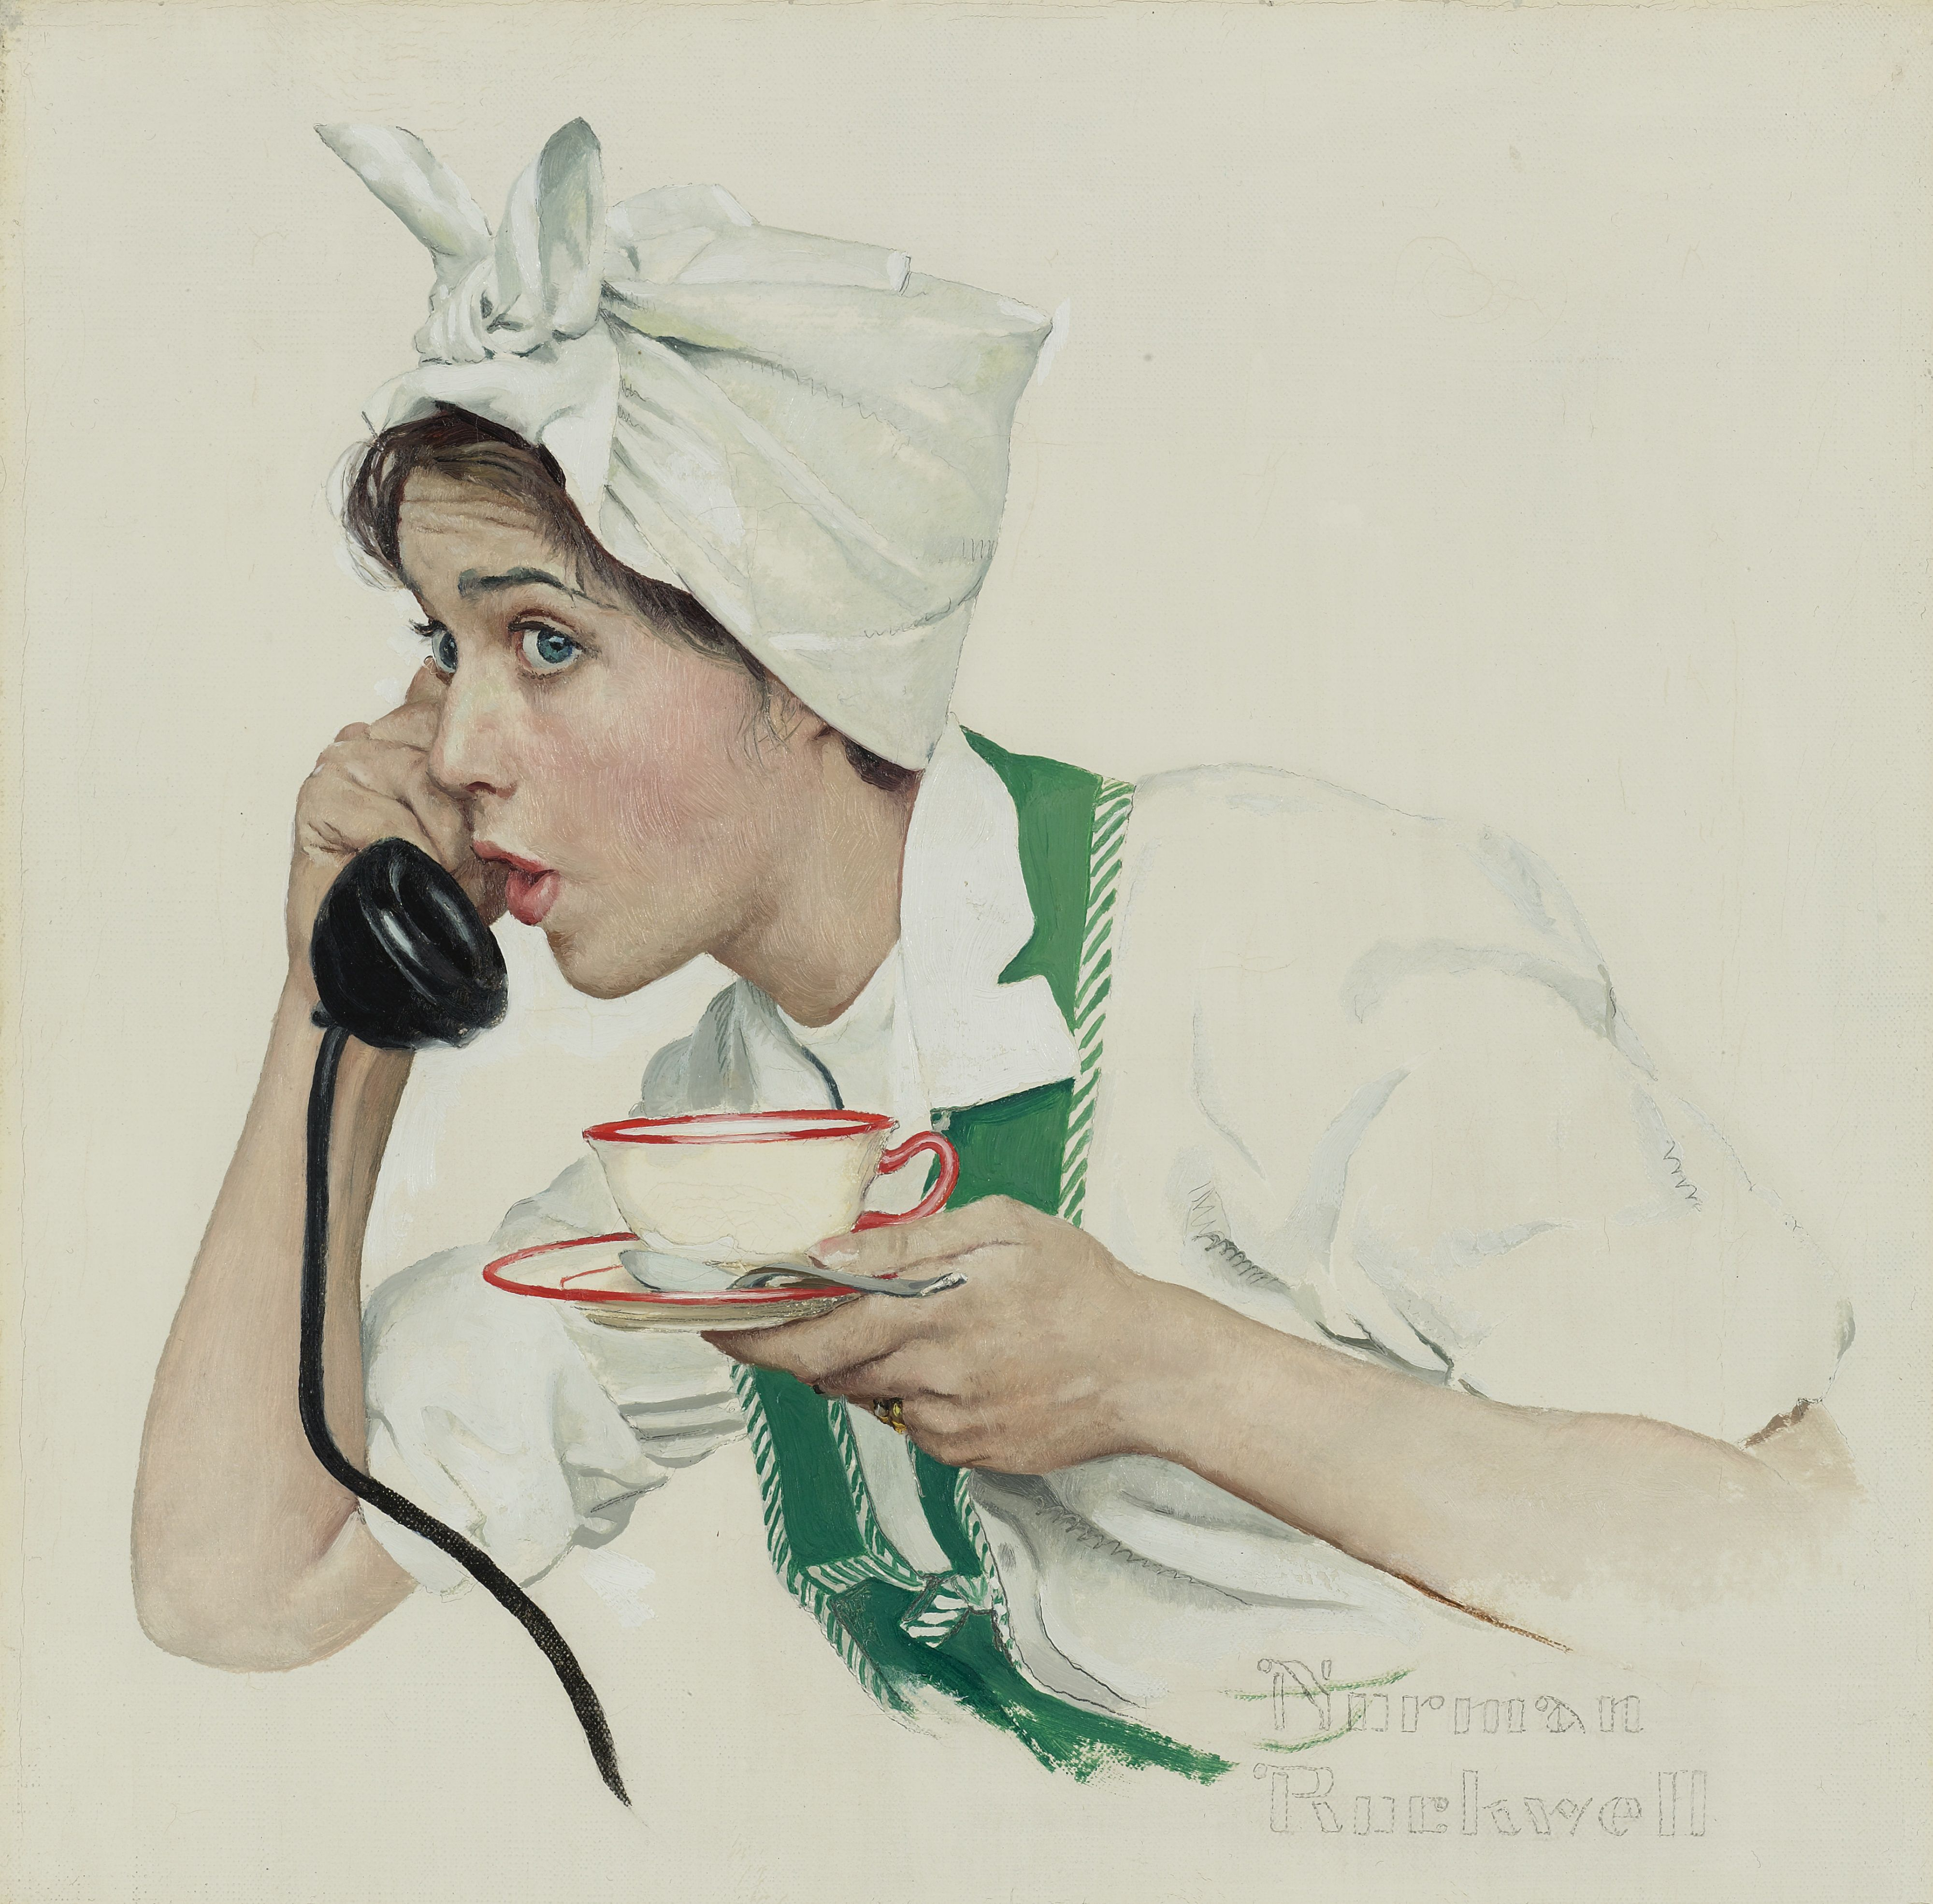 House Wife at Tea Break, Norman Rockwell painting, 1958 - one of series of five paintings commissioned especially for Red Rose Tea advertising by Brooke Bond